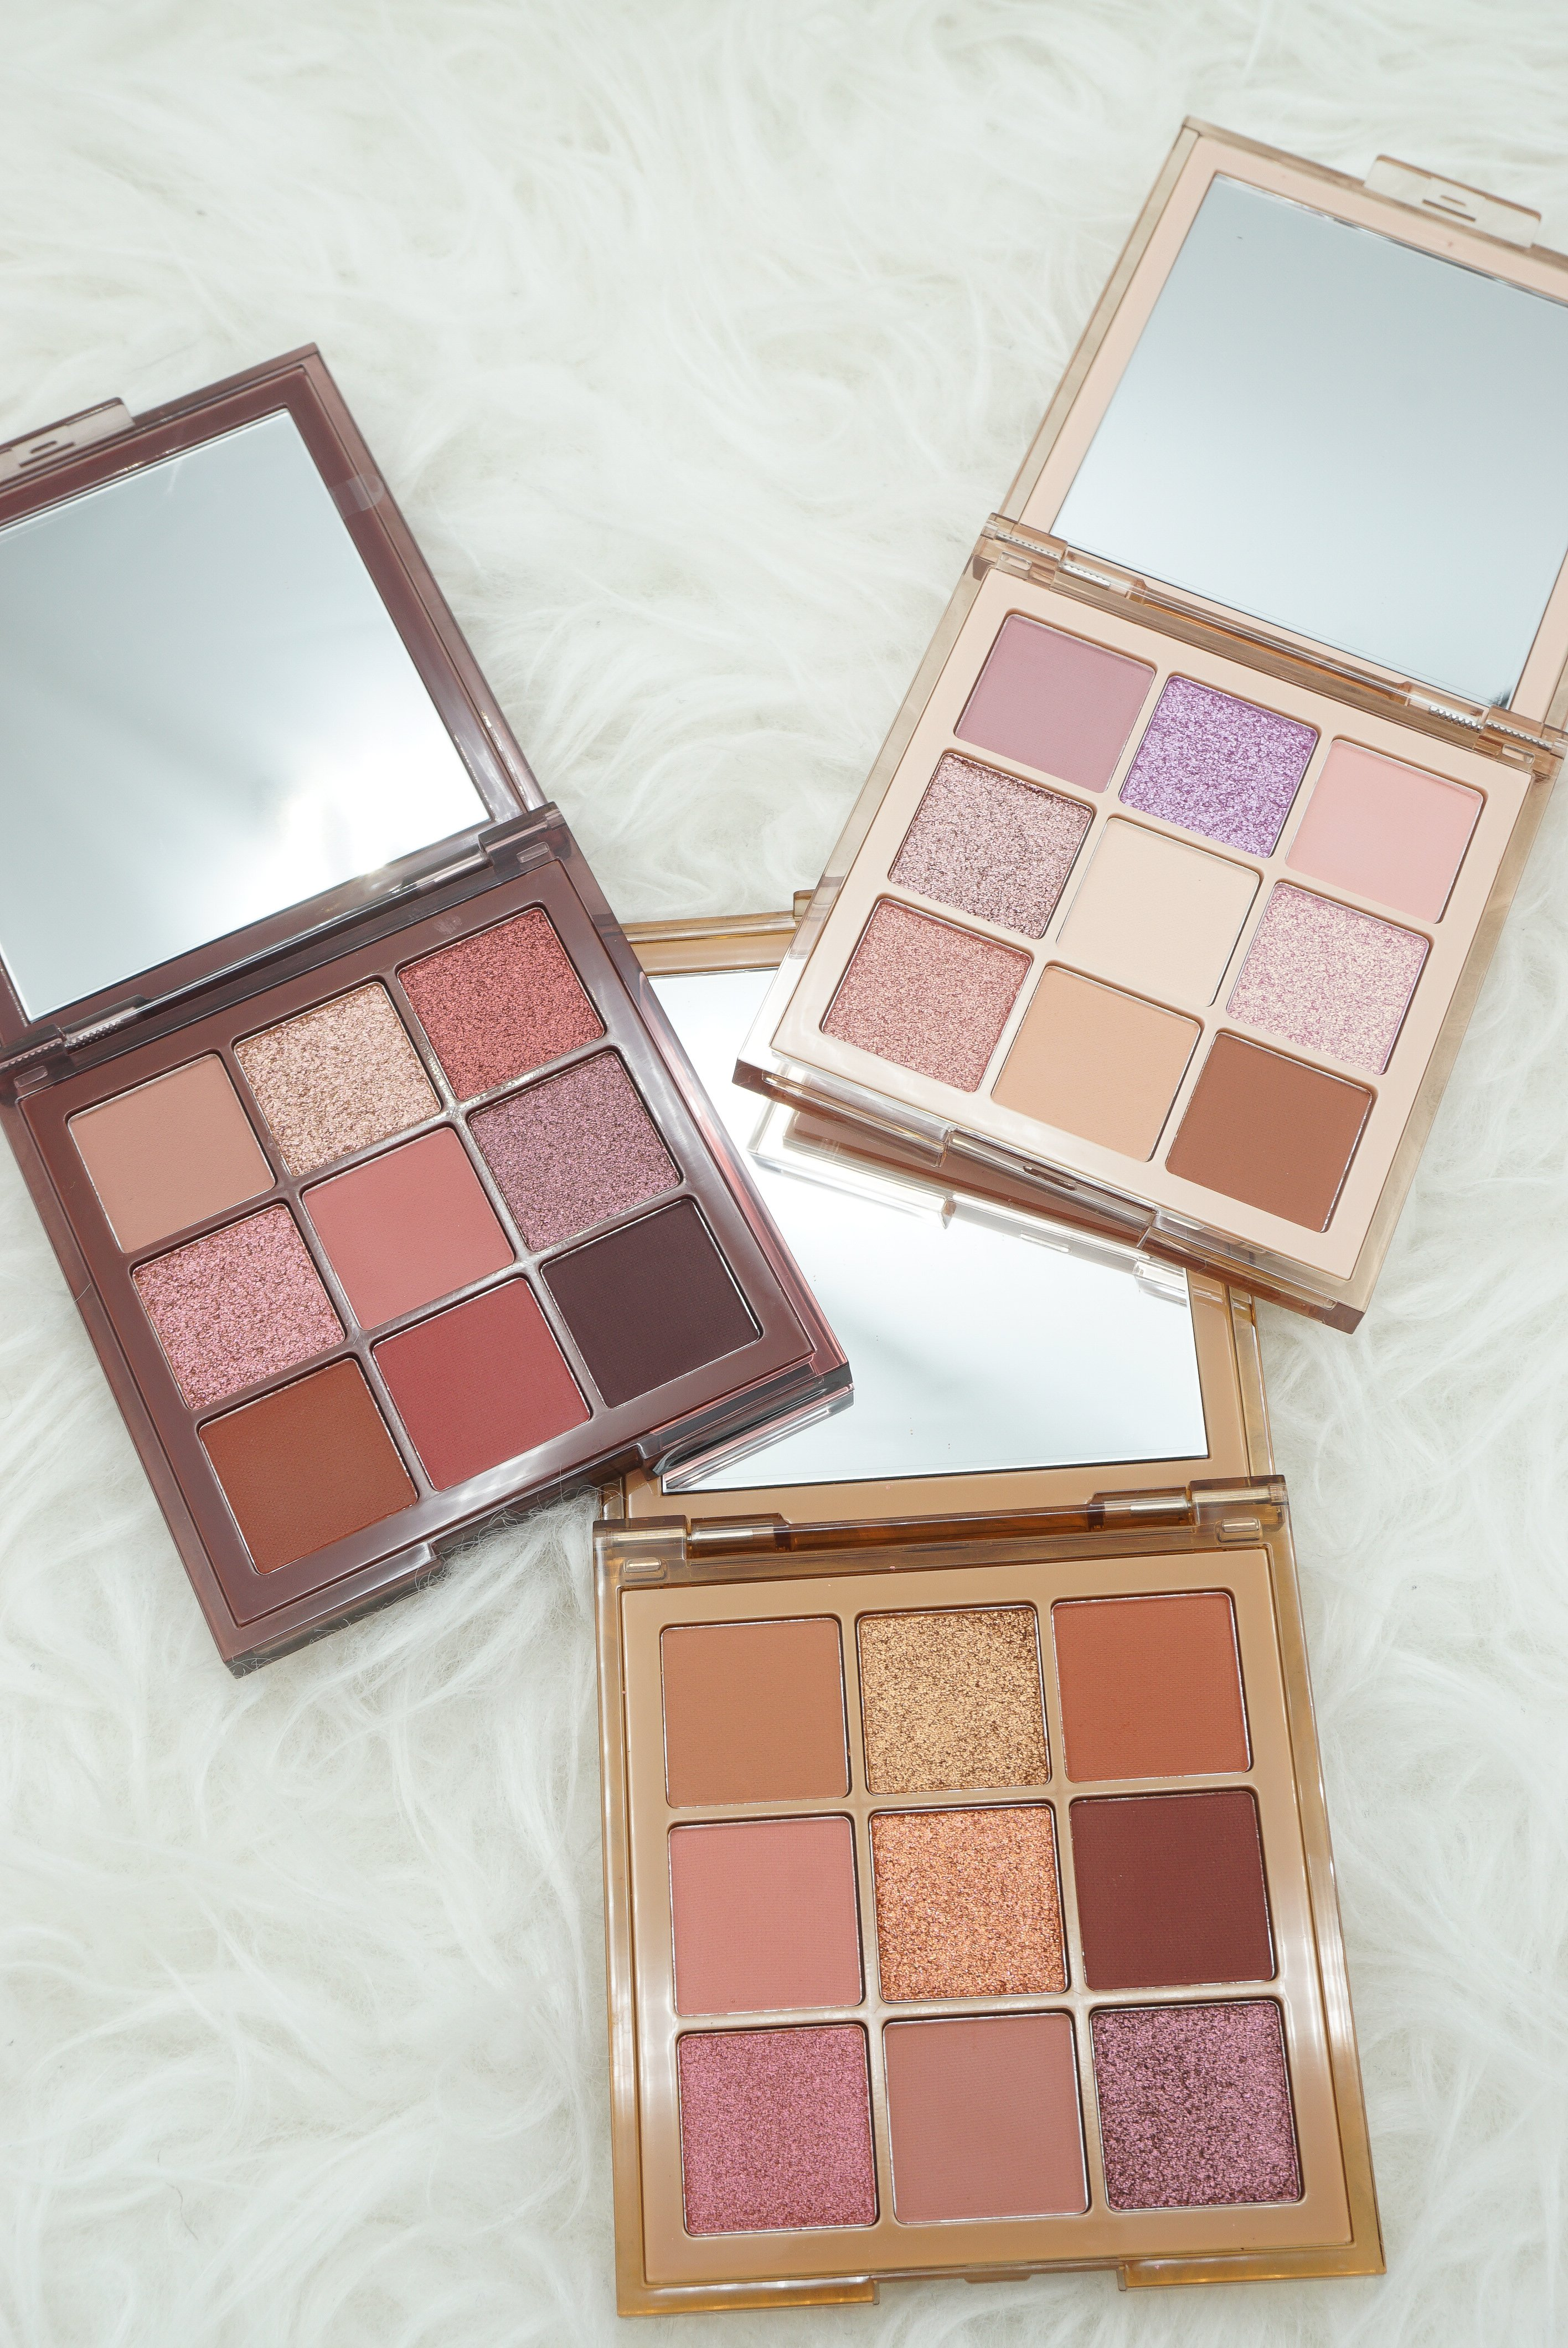 Huda Beauty Nude Obsessions Palettes   All 3 palettes Review & Swatches